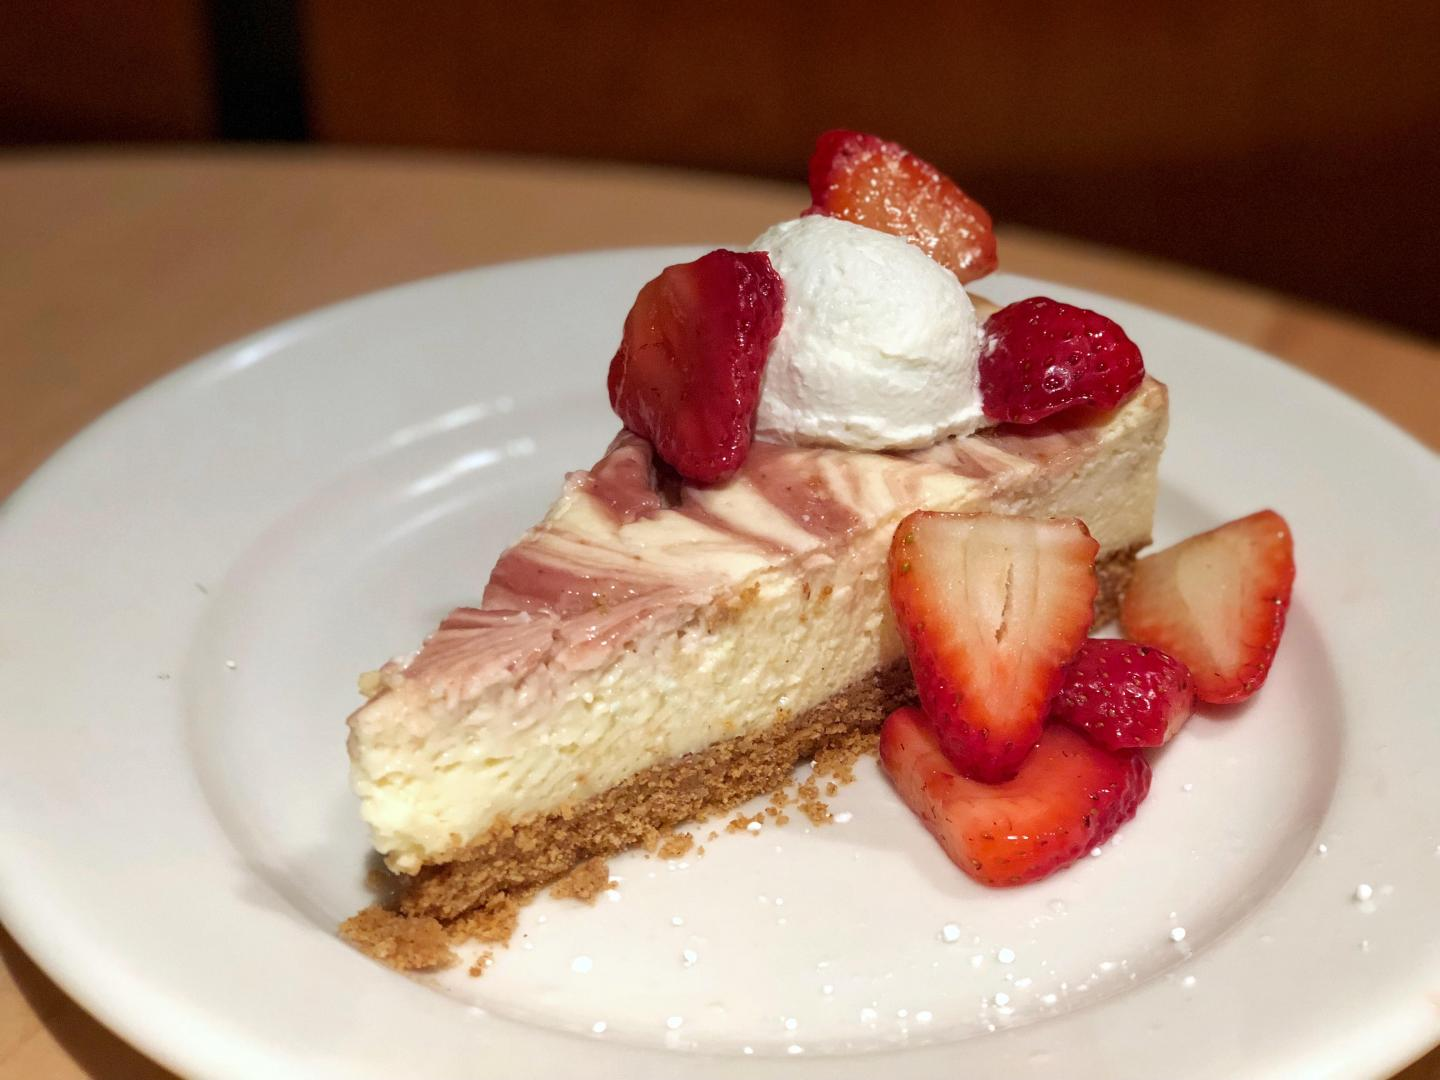 Slice of cheesecake with strawberries from Mity Nice in Water Tower Place